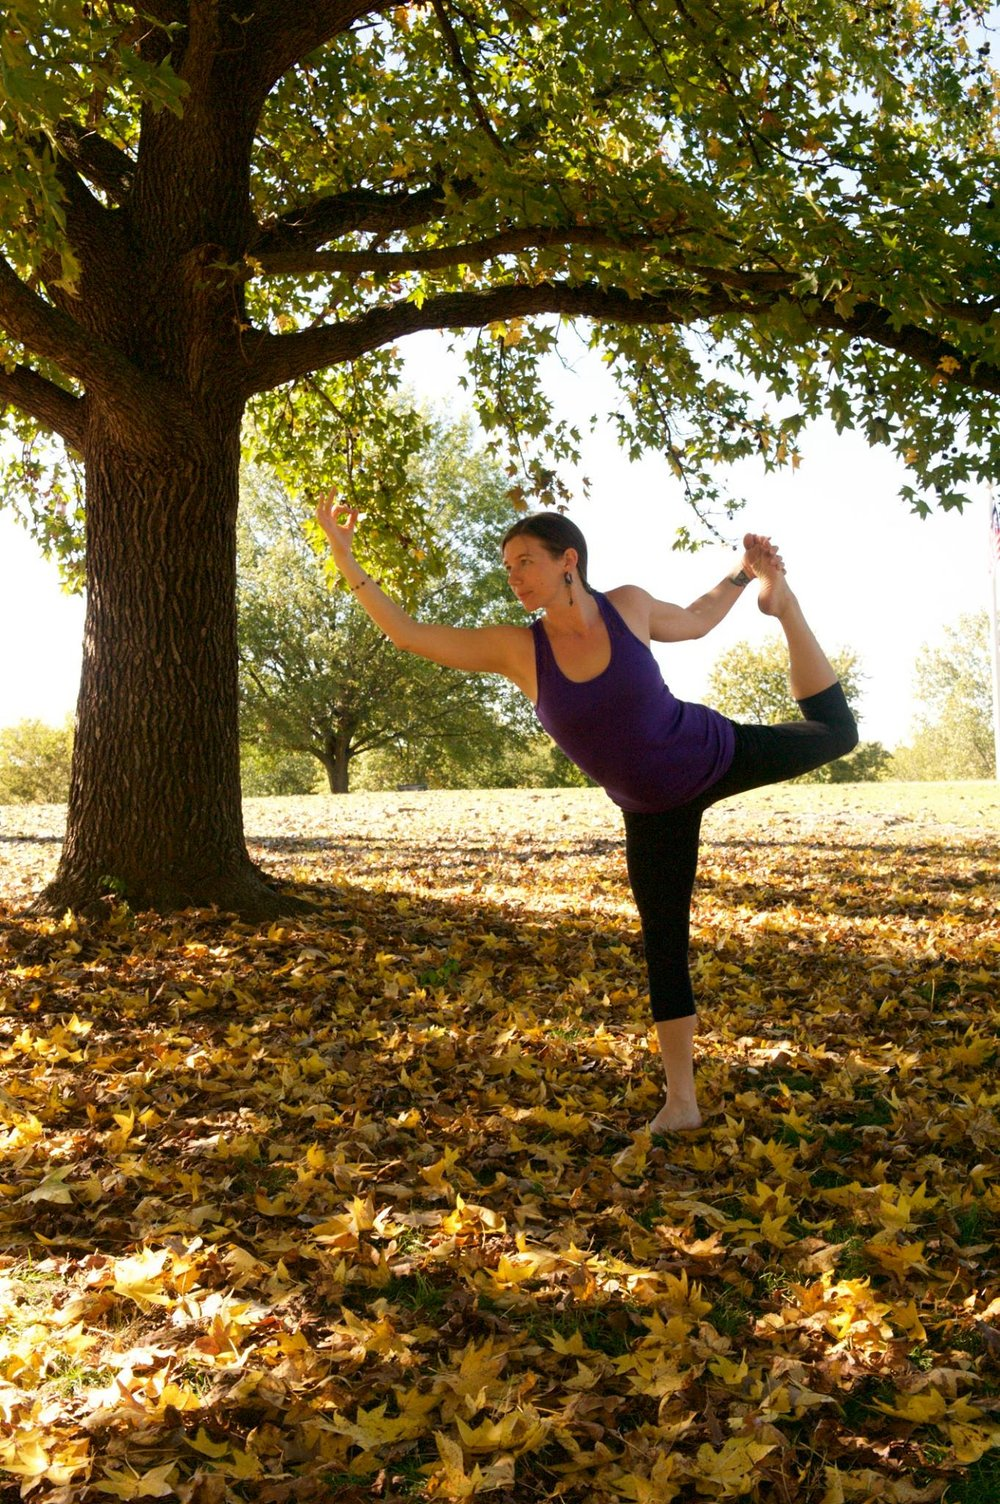 TERRI HARGROVE  Terri fell in love with yoga in 2010 and began her first teacher training in Jan. 2012 in the Bahamas and her second certification in 2014 in Baha, Mexico.  She has been teaching yoga for more than 5 years and opened her own studio in July 2015. Her gentle Hatha teaching style is accessible to all levels.  One of her favorite parts about having her own studio is keeping yoga safe and affordable in her community. Her welcoming tone and gentle guidance have folks feeling right at home on their mat by the end of their first practice.  TERRI IS THE OWNER AND FOUNDER OF YOGATERRIUM IN FORT SMITH, ARKANSAS. Yogaterrium first opened it's doors on July 1st, 2015. This space was opened with the goal of creating a welcoming environment offering classes for all levels and budgets. We believe that yoga should be available to everyone!  There are a variety of students at different levels in their practice; there are those discovering yoga for the first time and those who flow effortlessly into a headstand. The common theme encouraged through all students is to feel safe at yogaterrium, to practice yoga without competing, judging, or the fear of being judged. We are all here to grow, deepen our practice, enjoy ourselves and reap the many physical and mental benefits of yoga.